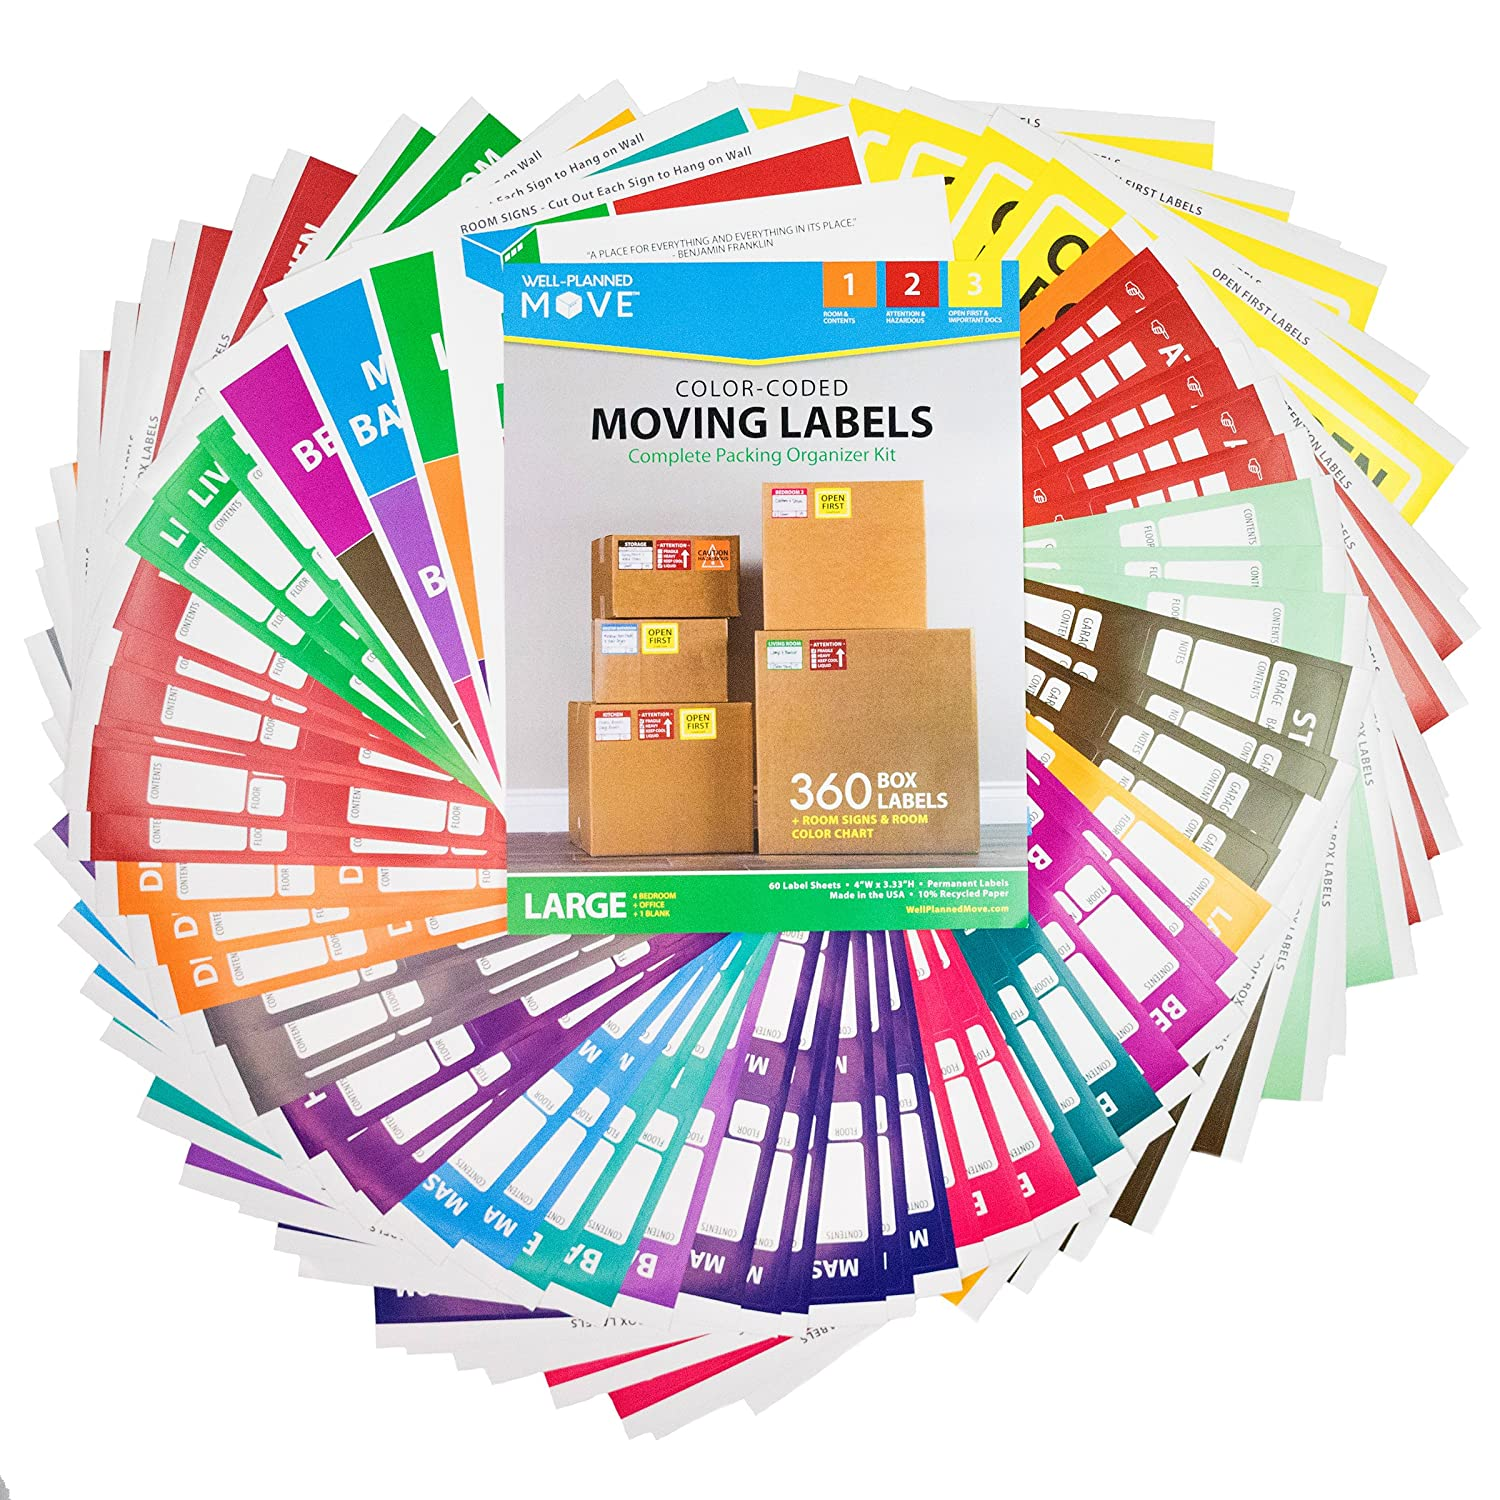 Amazon Complete Moving Label Kit Large Color Coded Moving